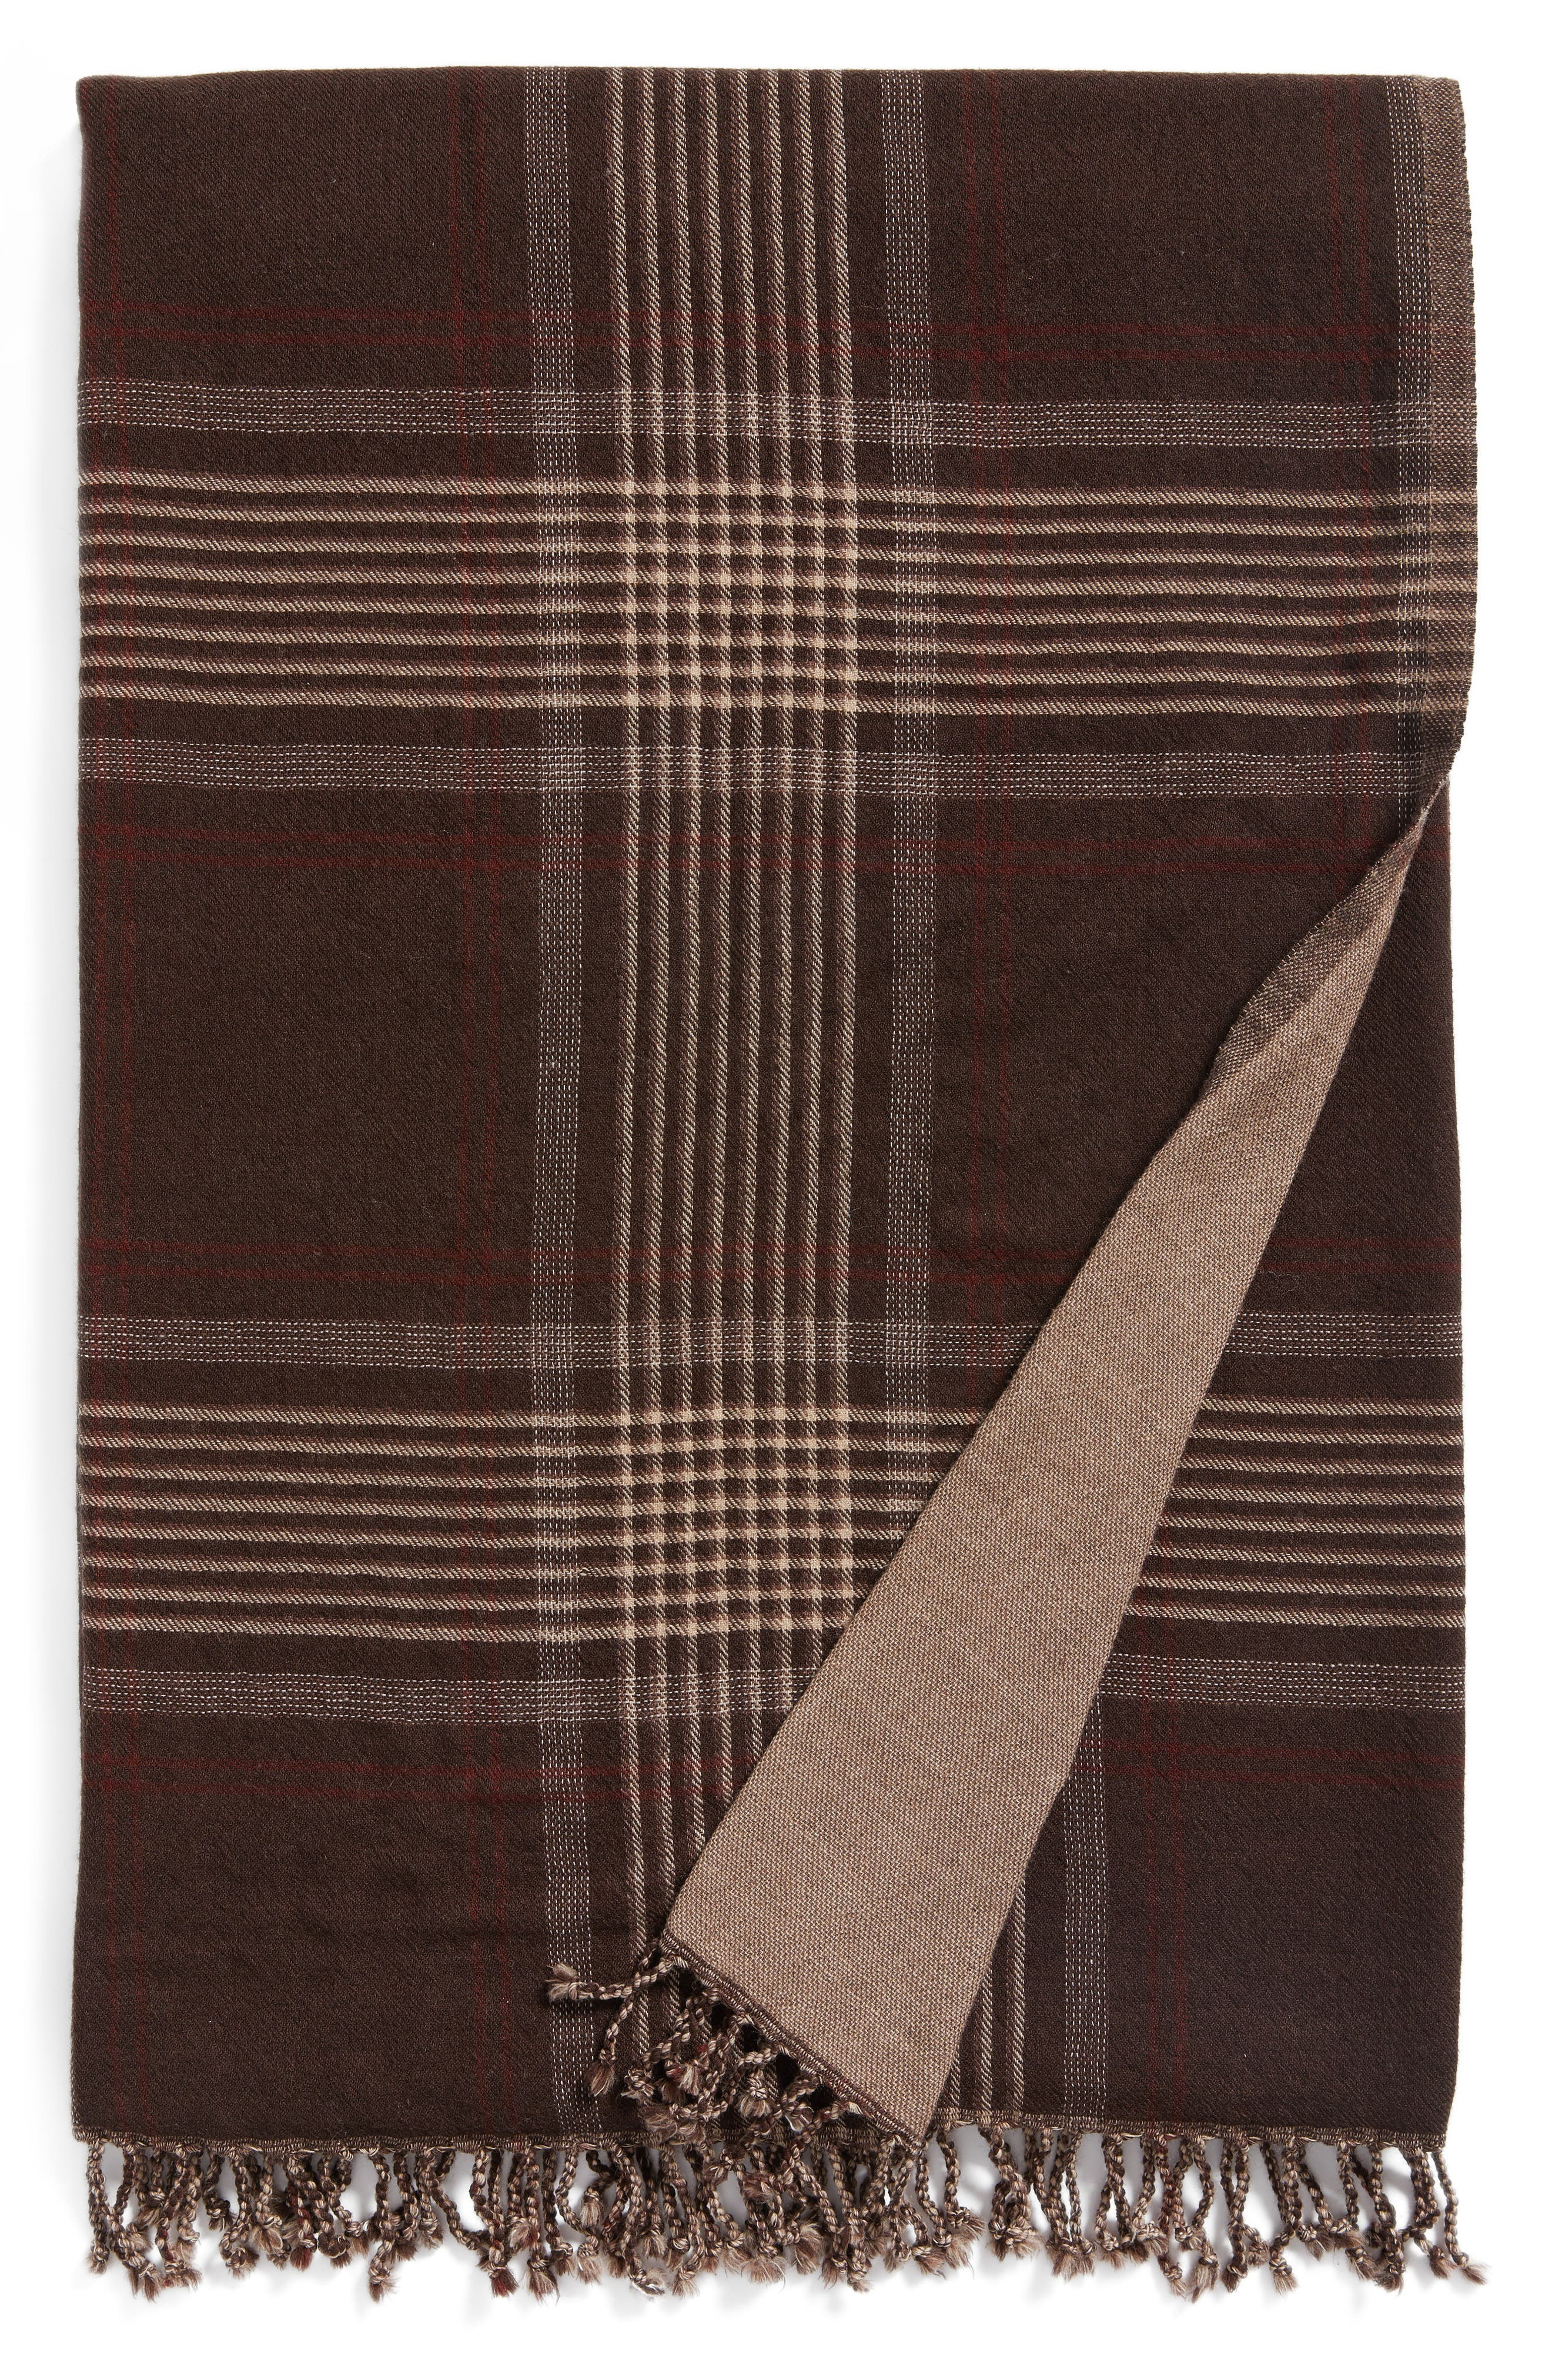 Plaid Double Face Merino Wool Throw,                         Main,                         color, Brown Shadow Stripe Plaid